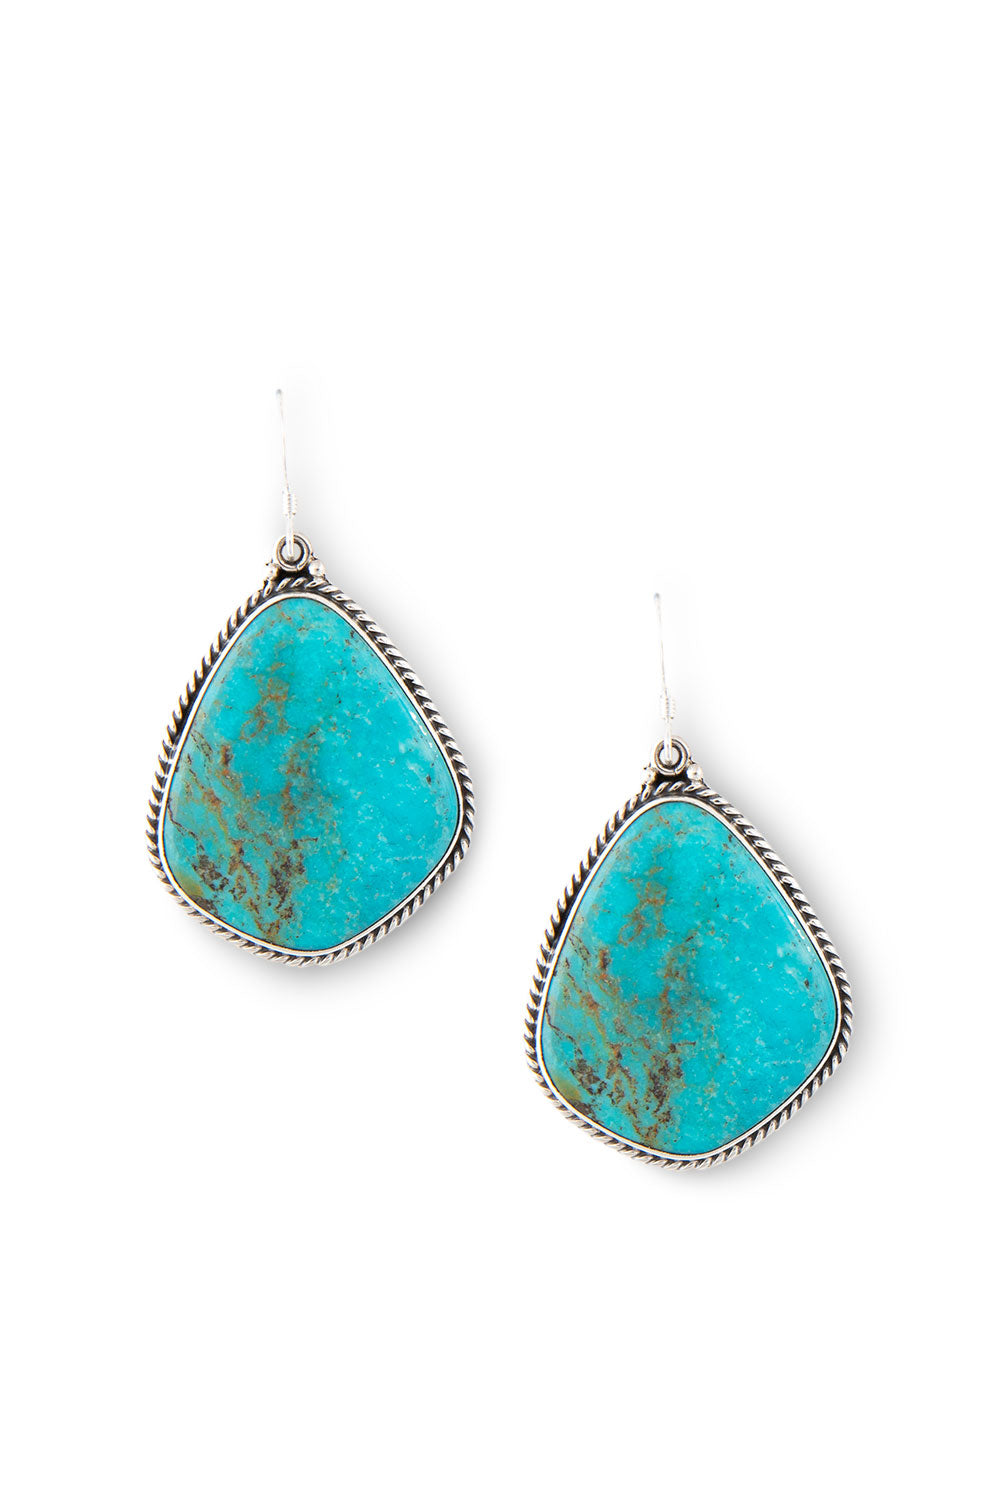 Earrings, Slab, Turquoise, Navajo, Hallmark, 431